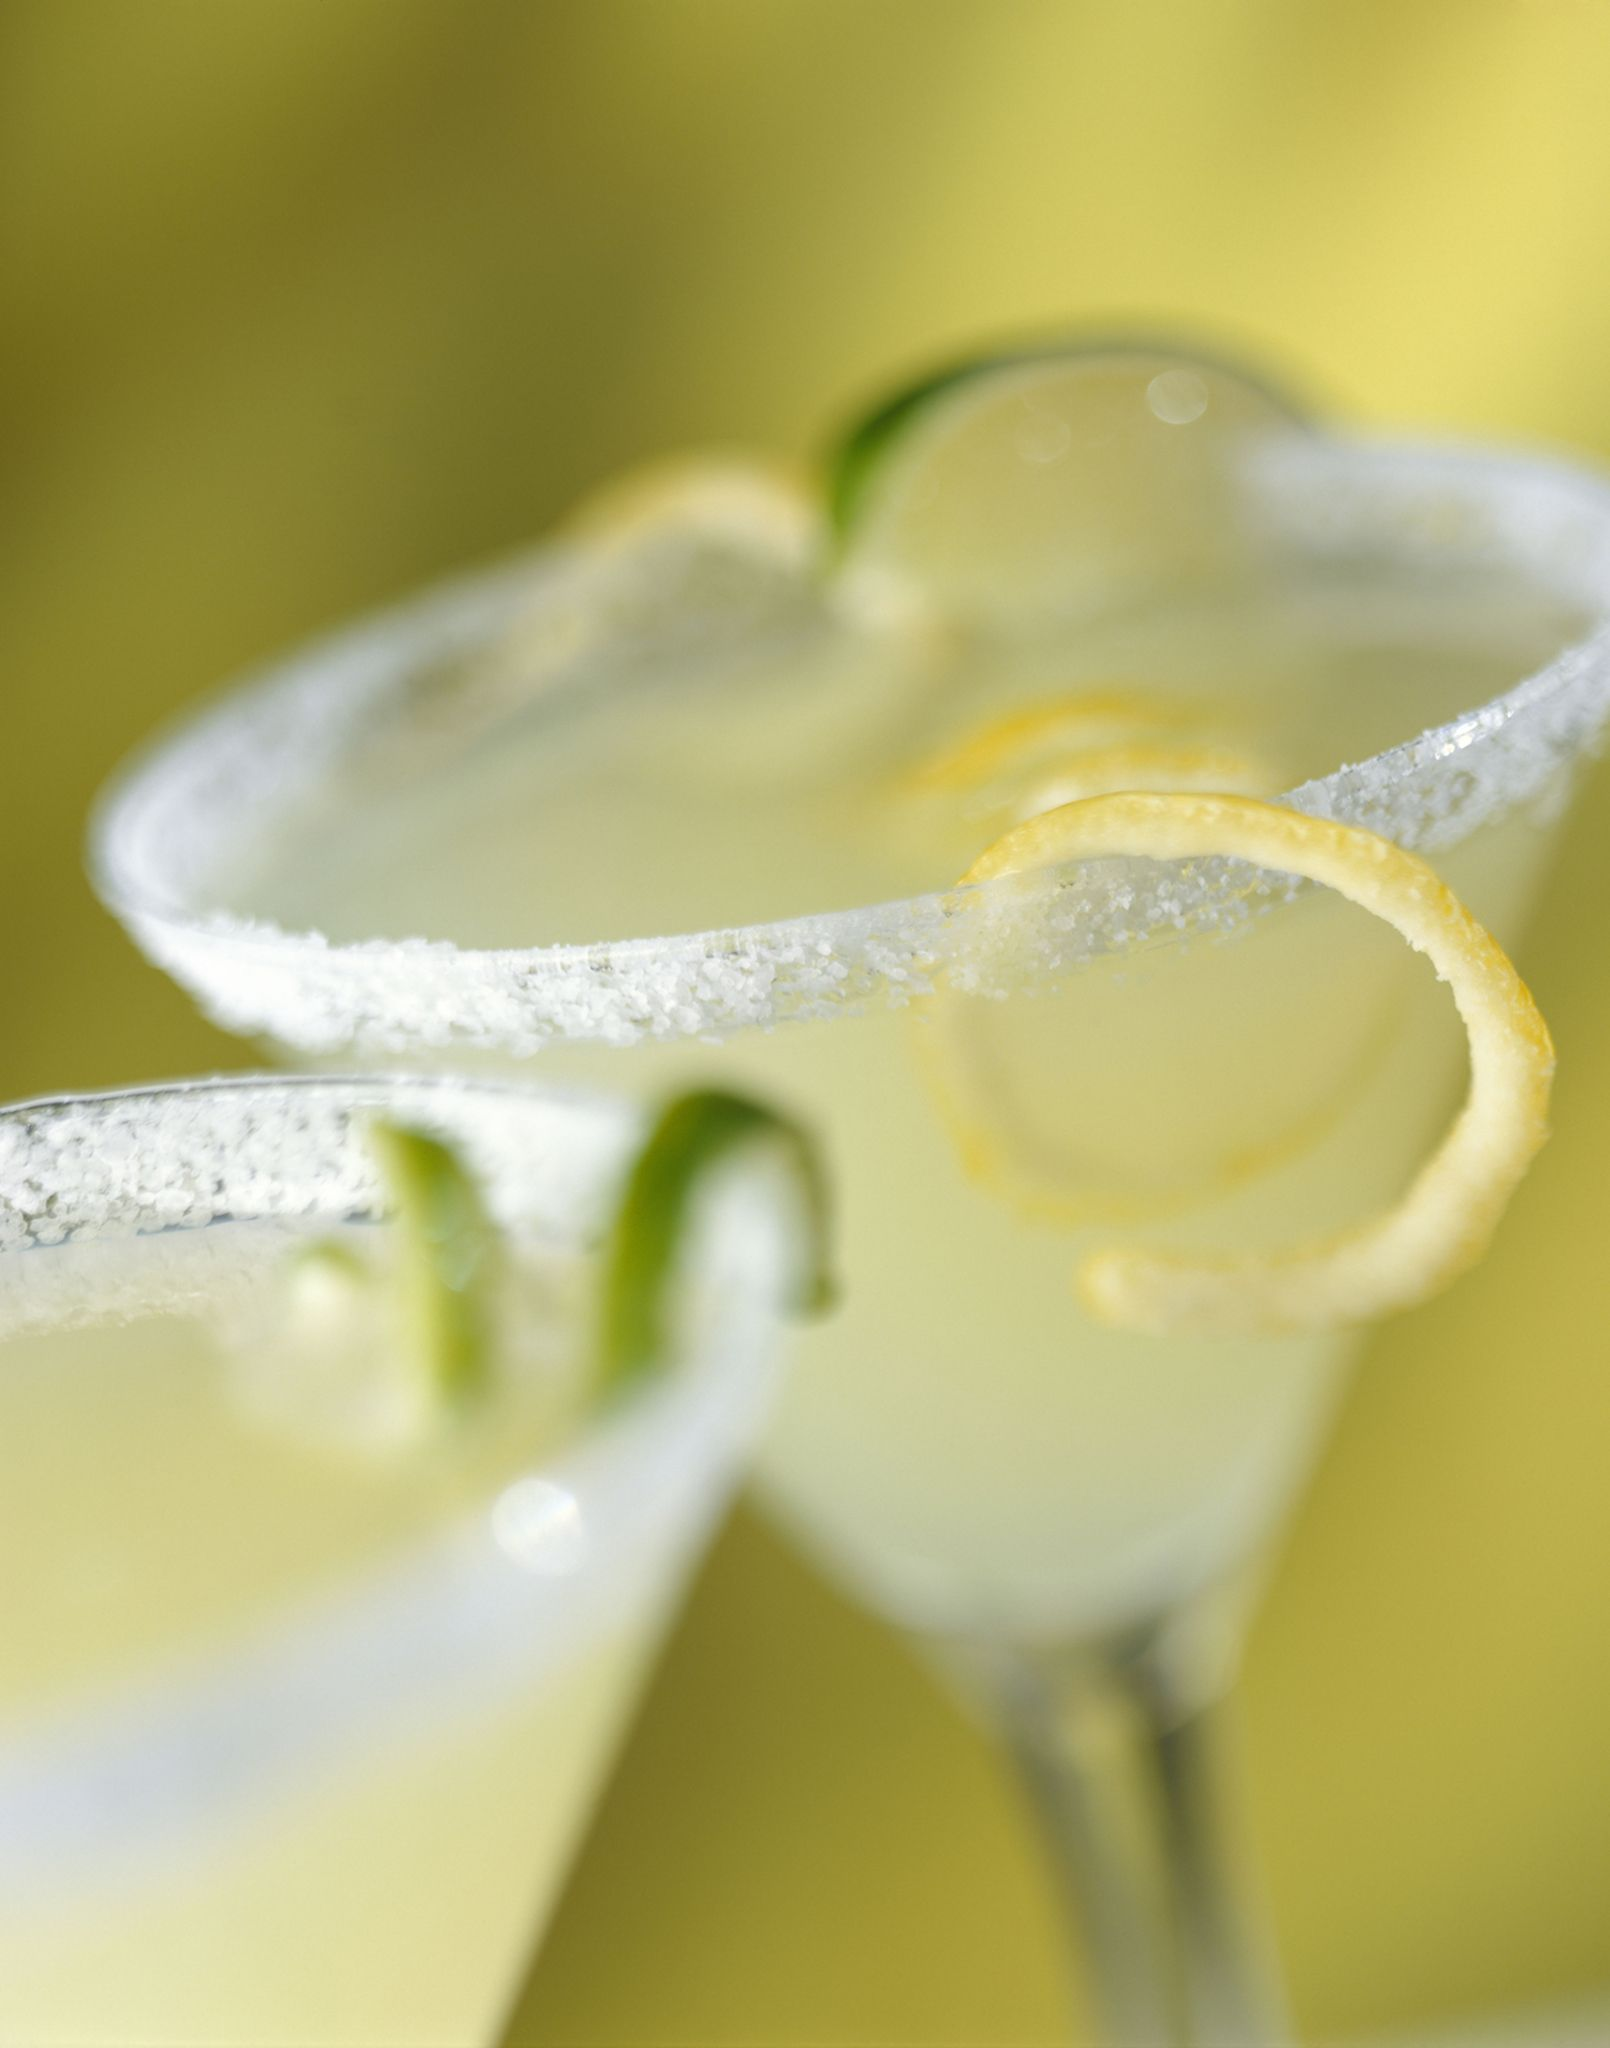 Use a limoncello rinse in your vodka martini to create a sweet and tart cocktail that is easy to fall in love with.